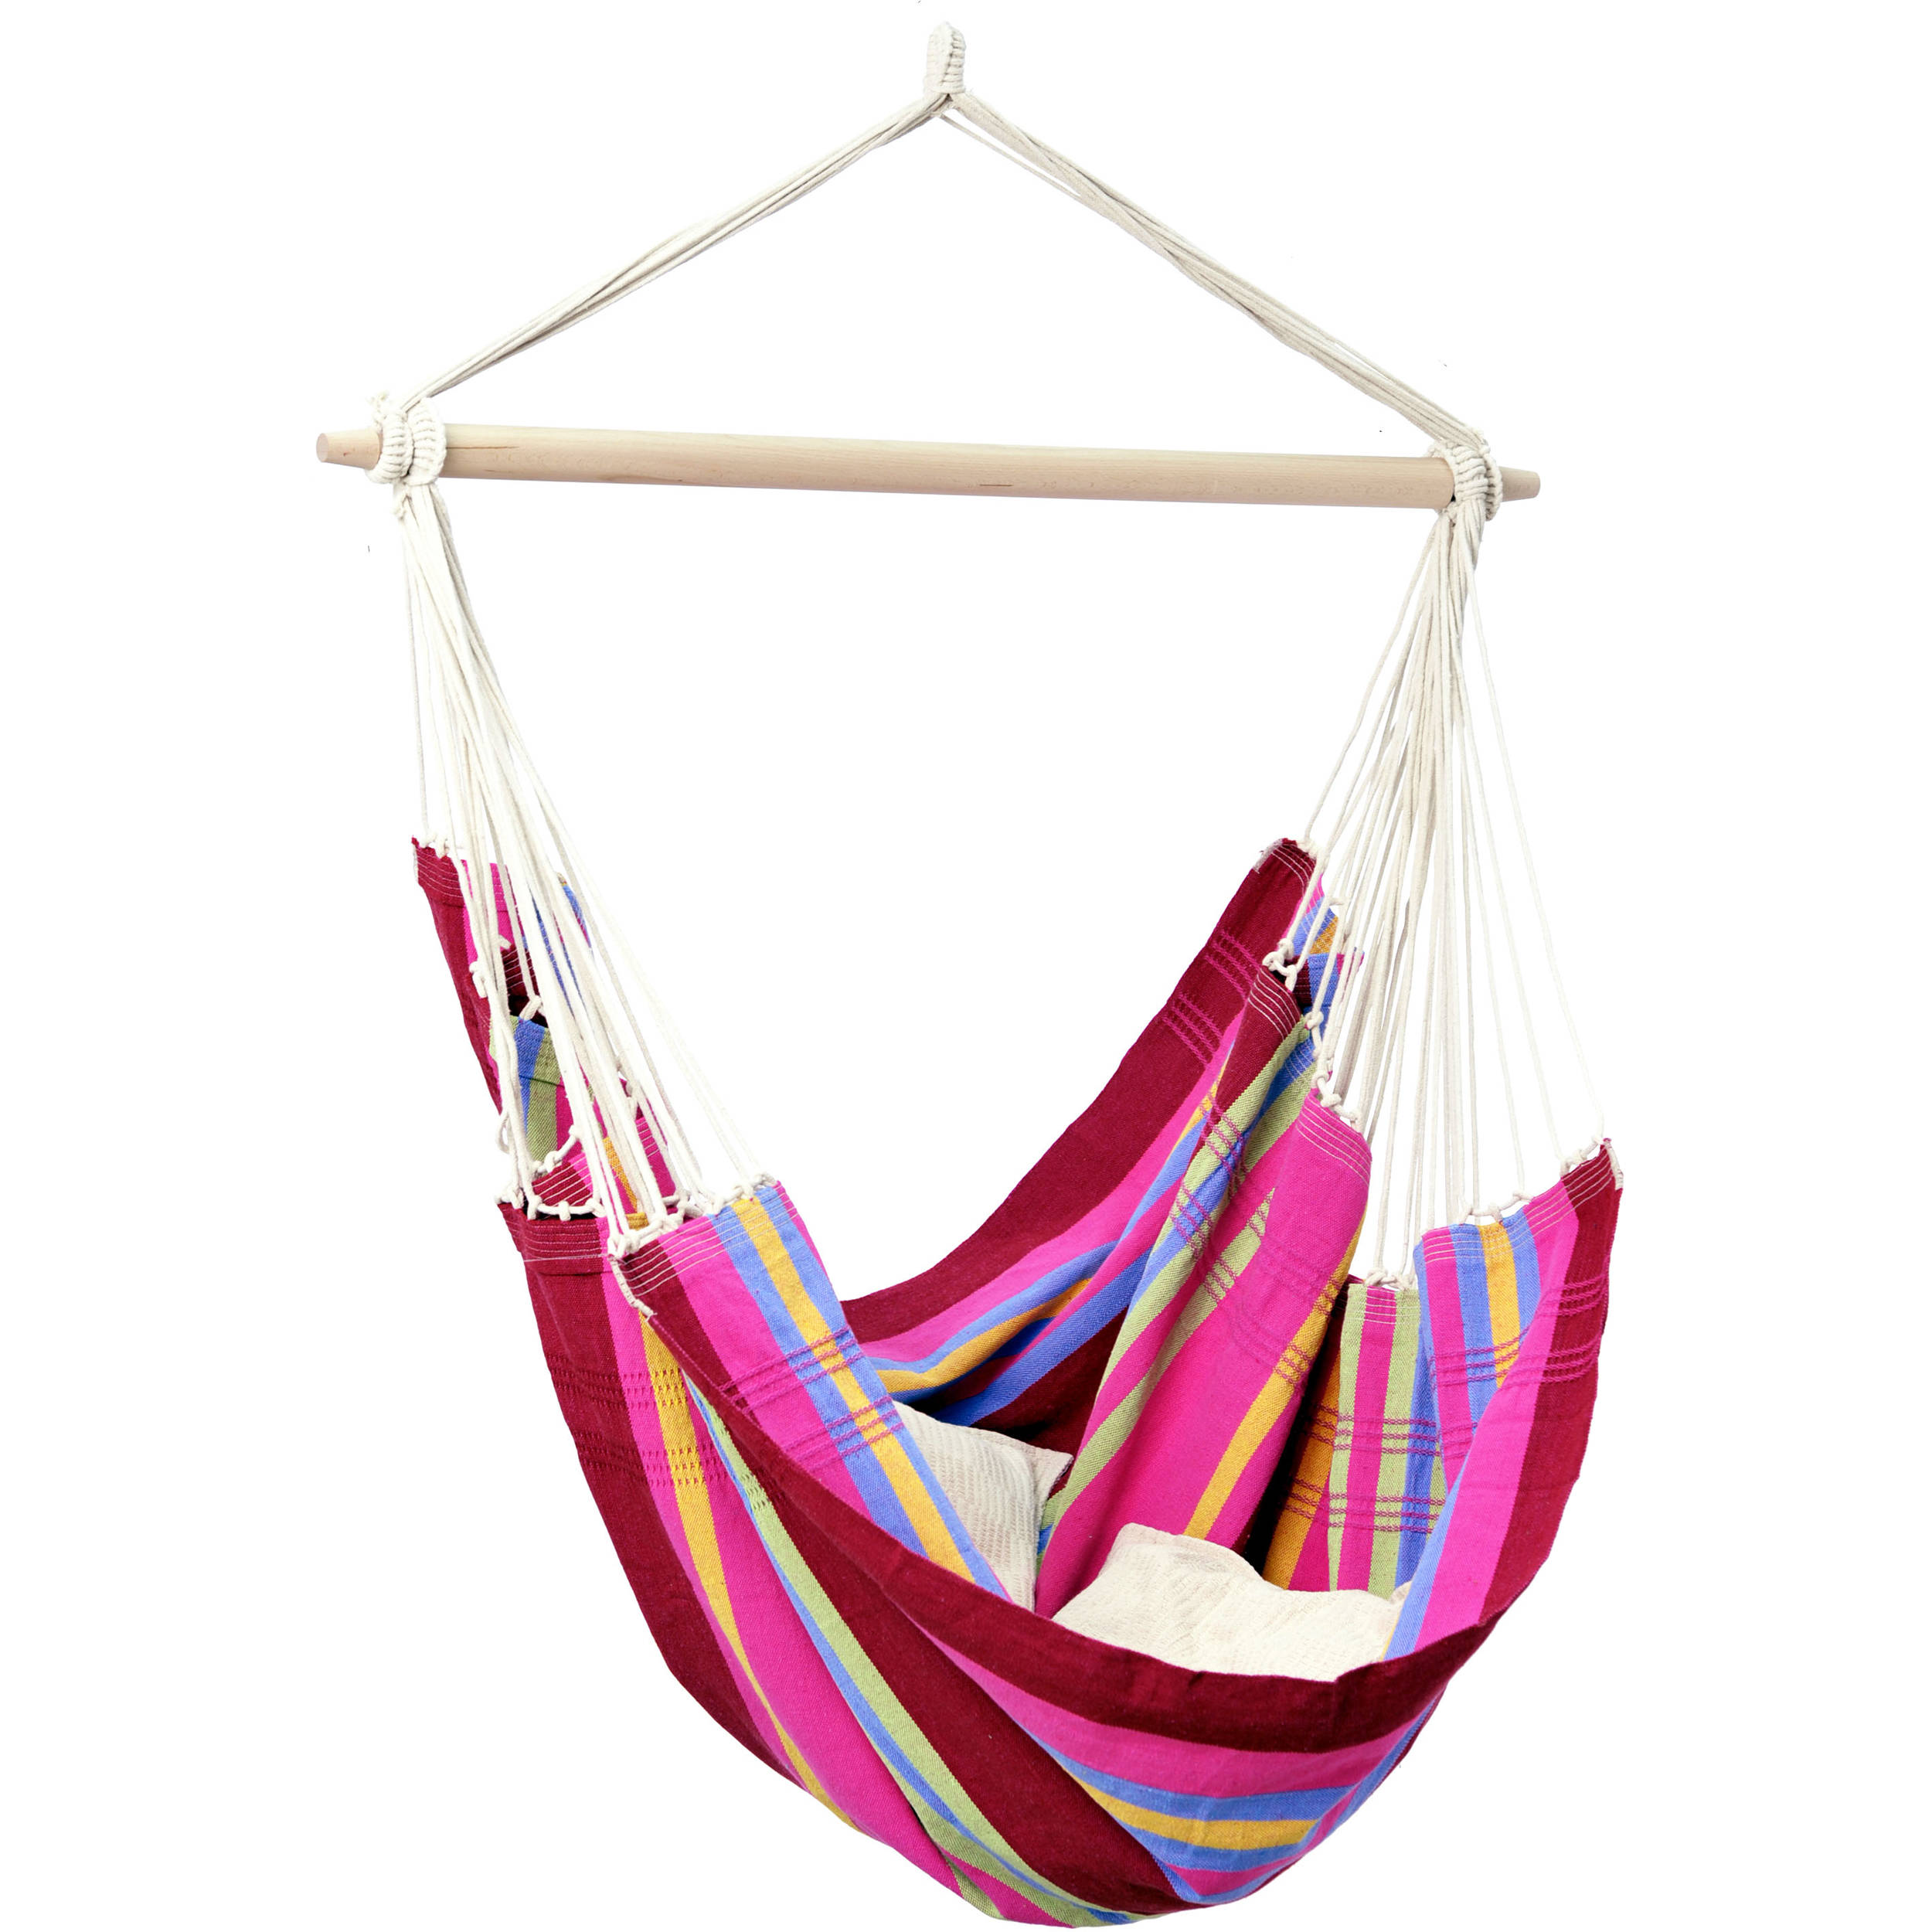 Medium image of byer of maine brazil hammock chair  sorbet